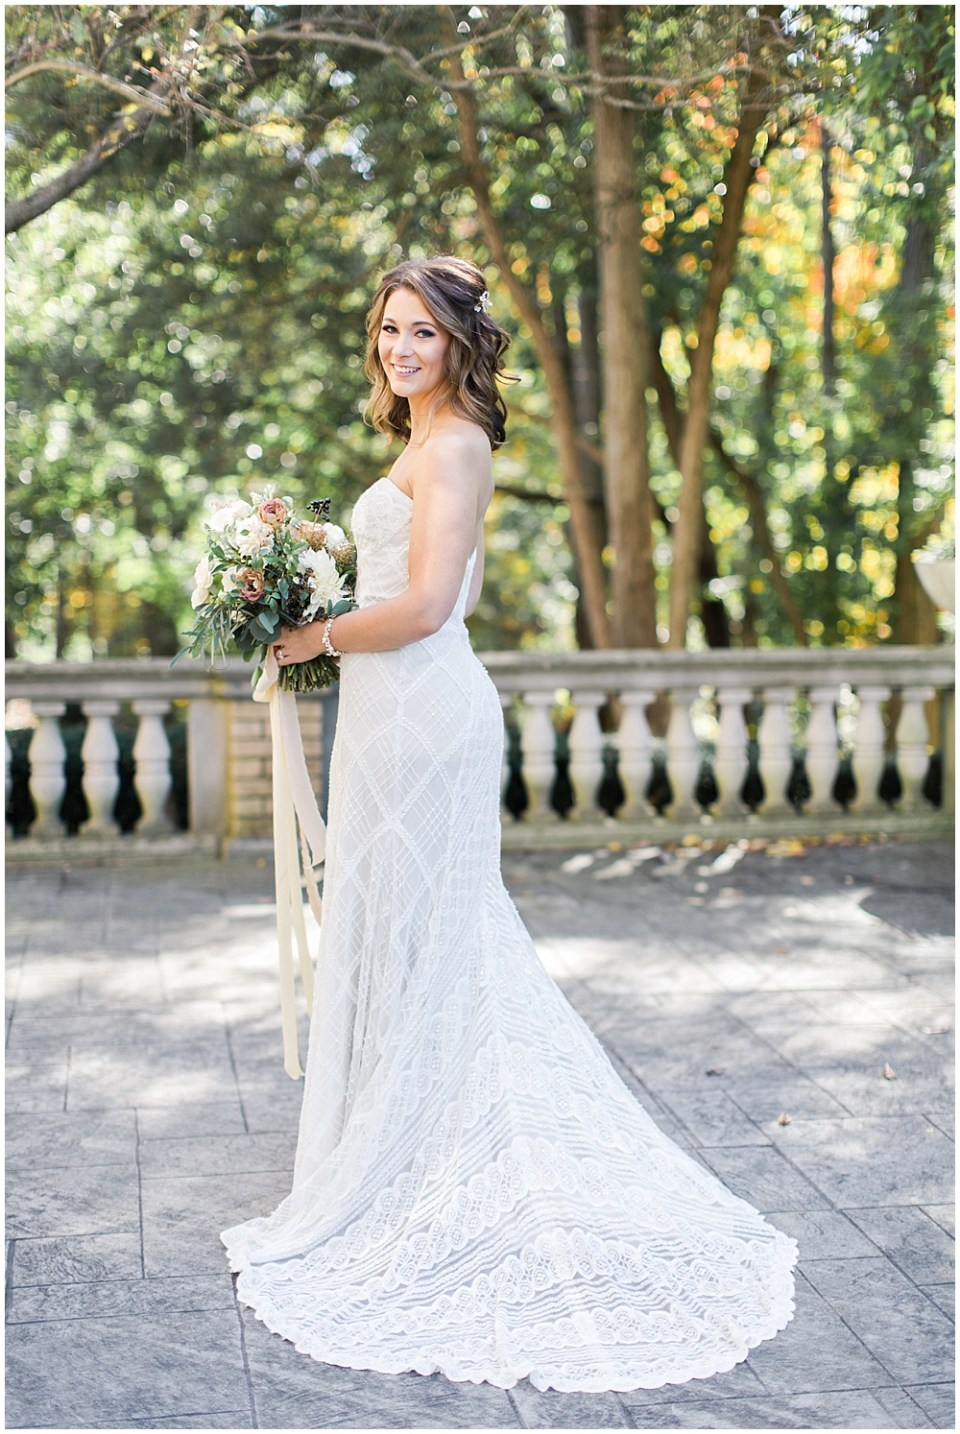 Lace wedding gown   Navy and Gold Wedding at Laurel Hall with Ivan & Louise Photography + Jessica Dum Wedding Coordination